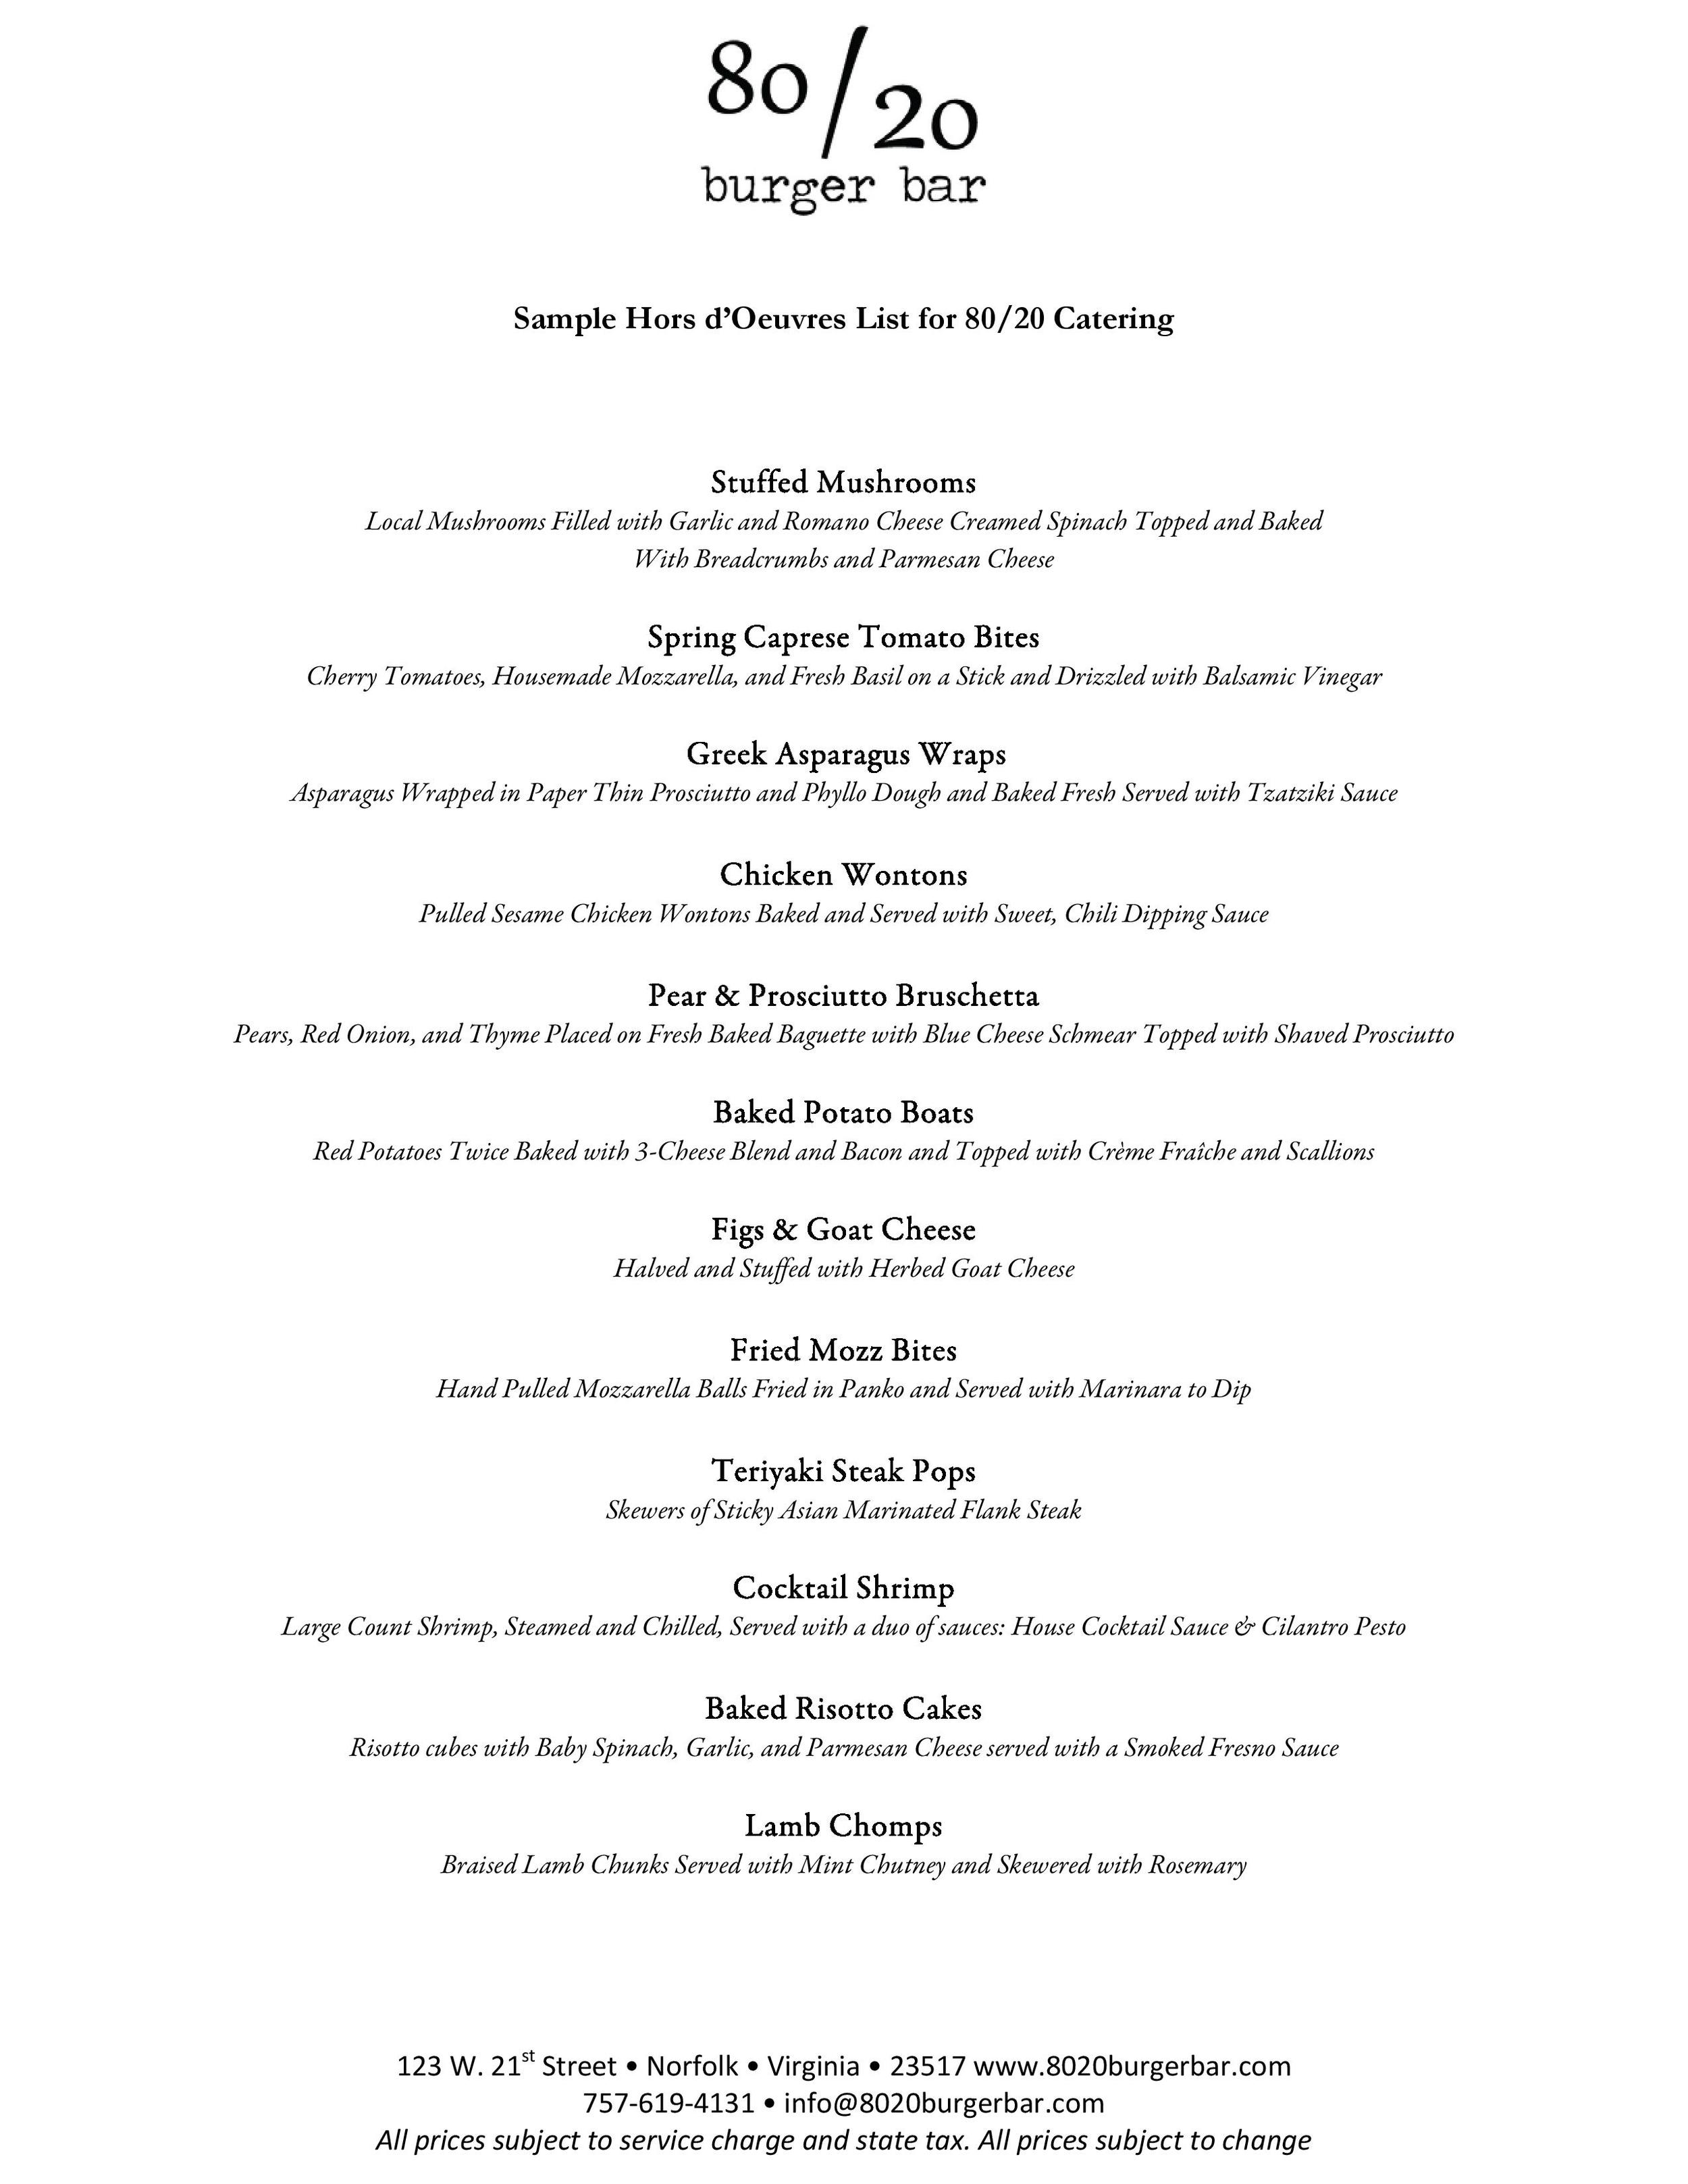 Catering Docs and Menus (for distribution)-page-003.jpg